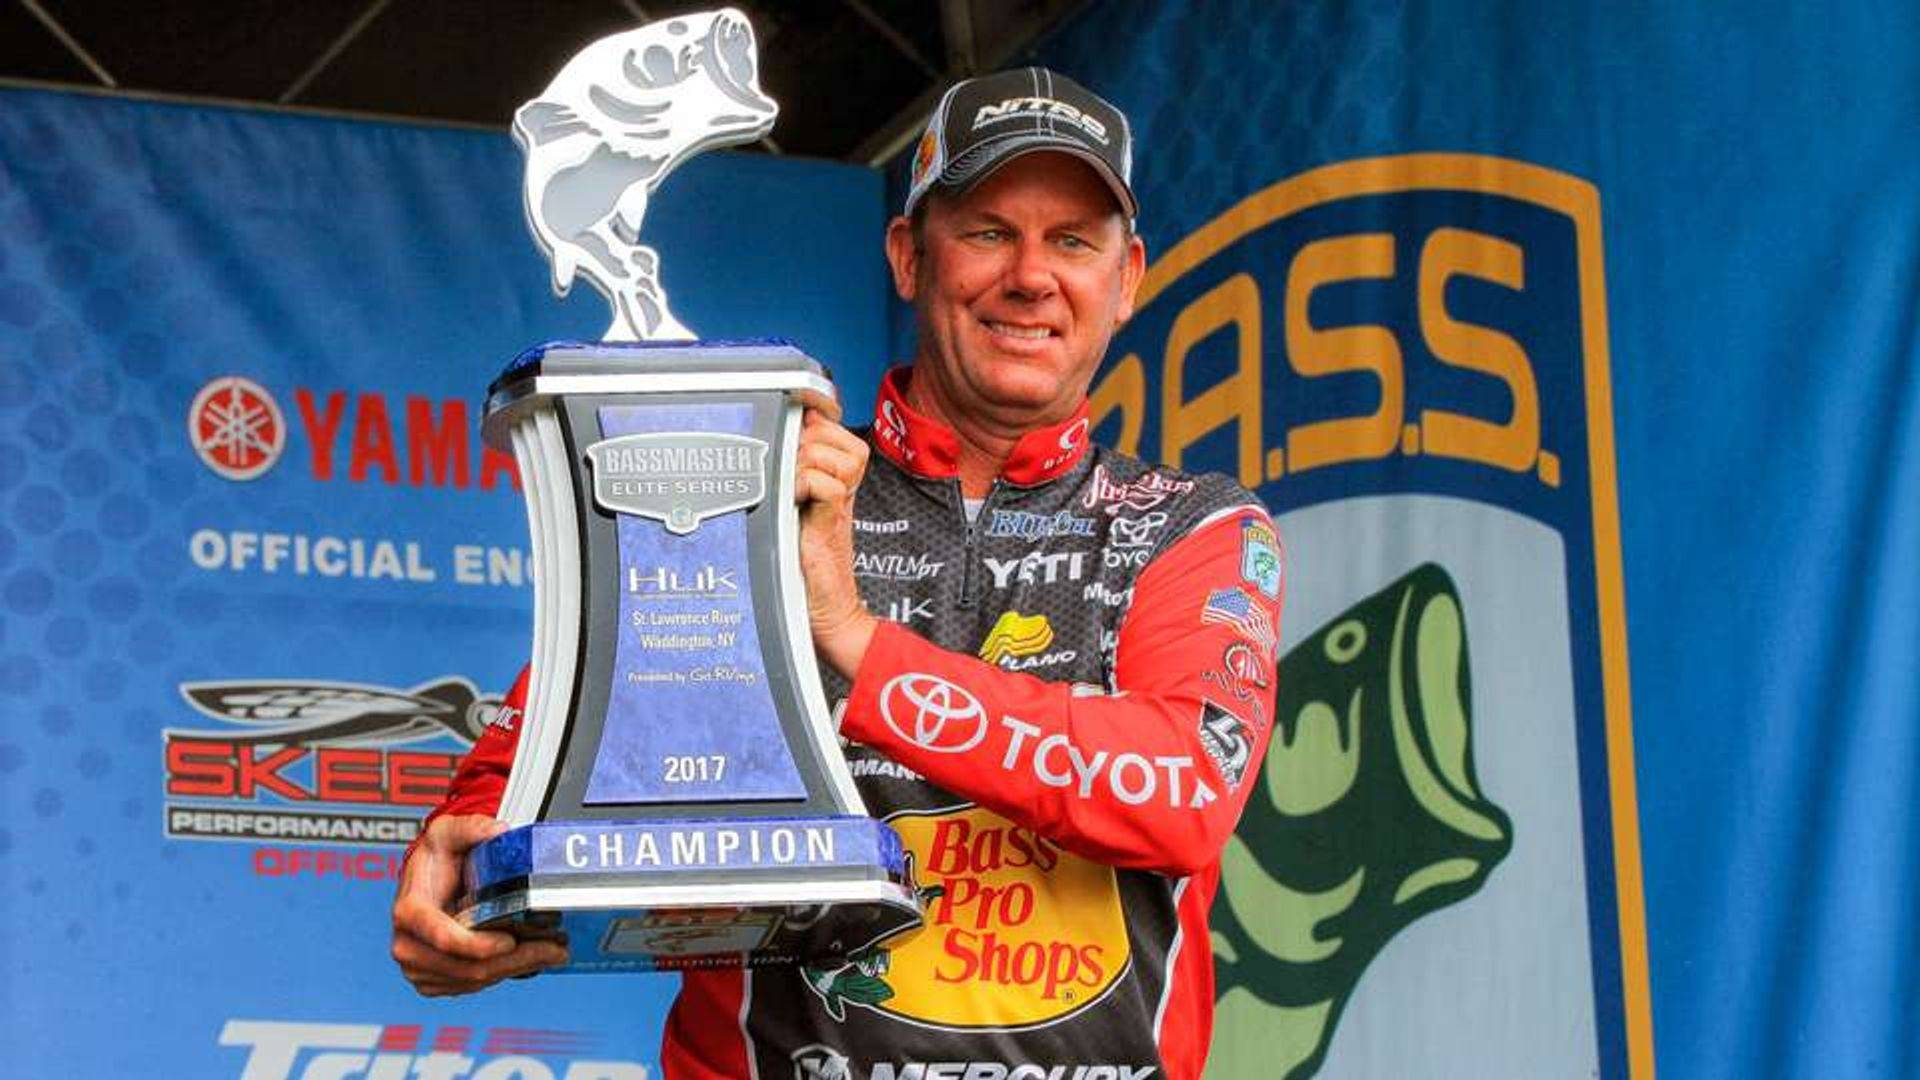 Steve filming at Elite,bass fishing tips and videos, bass fishing reports, bass fishing tackle